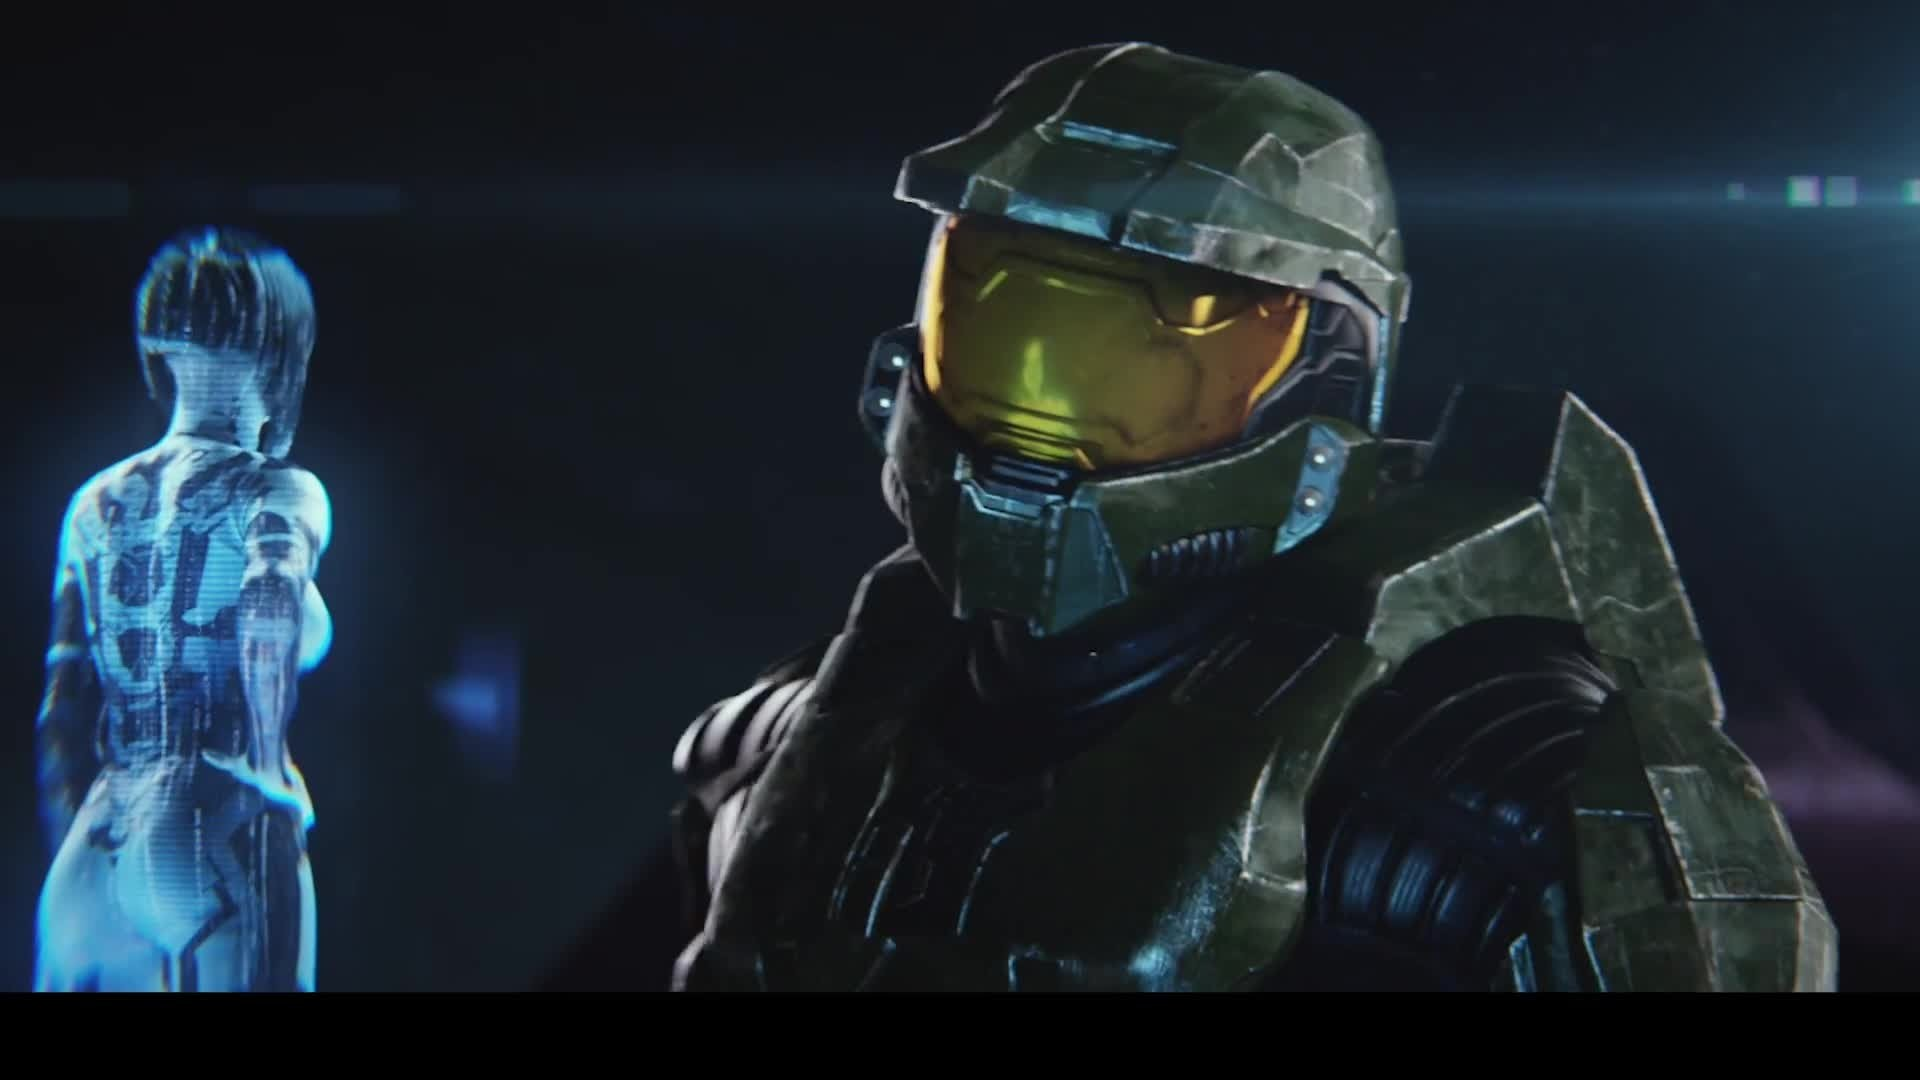 Halo 2 Anniversary Wallpapers hd Halo 2 Anniversary Official